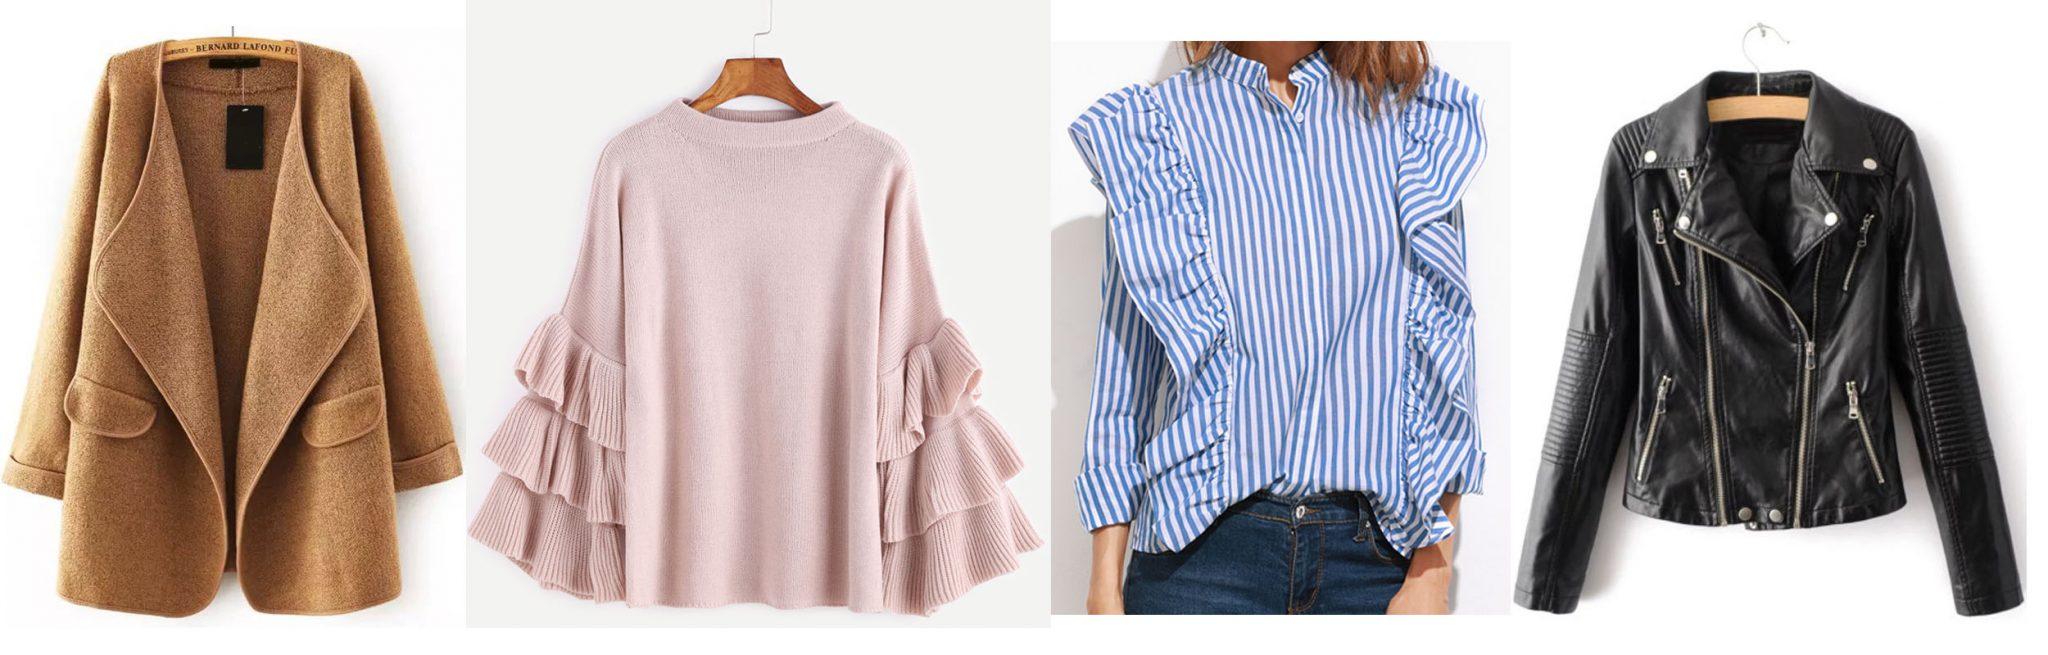 Shein-winter-favorites